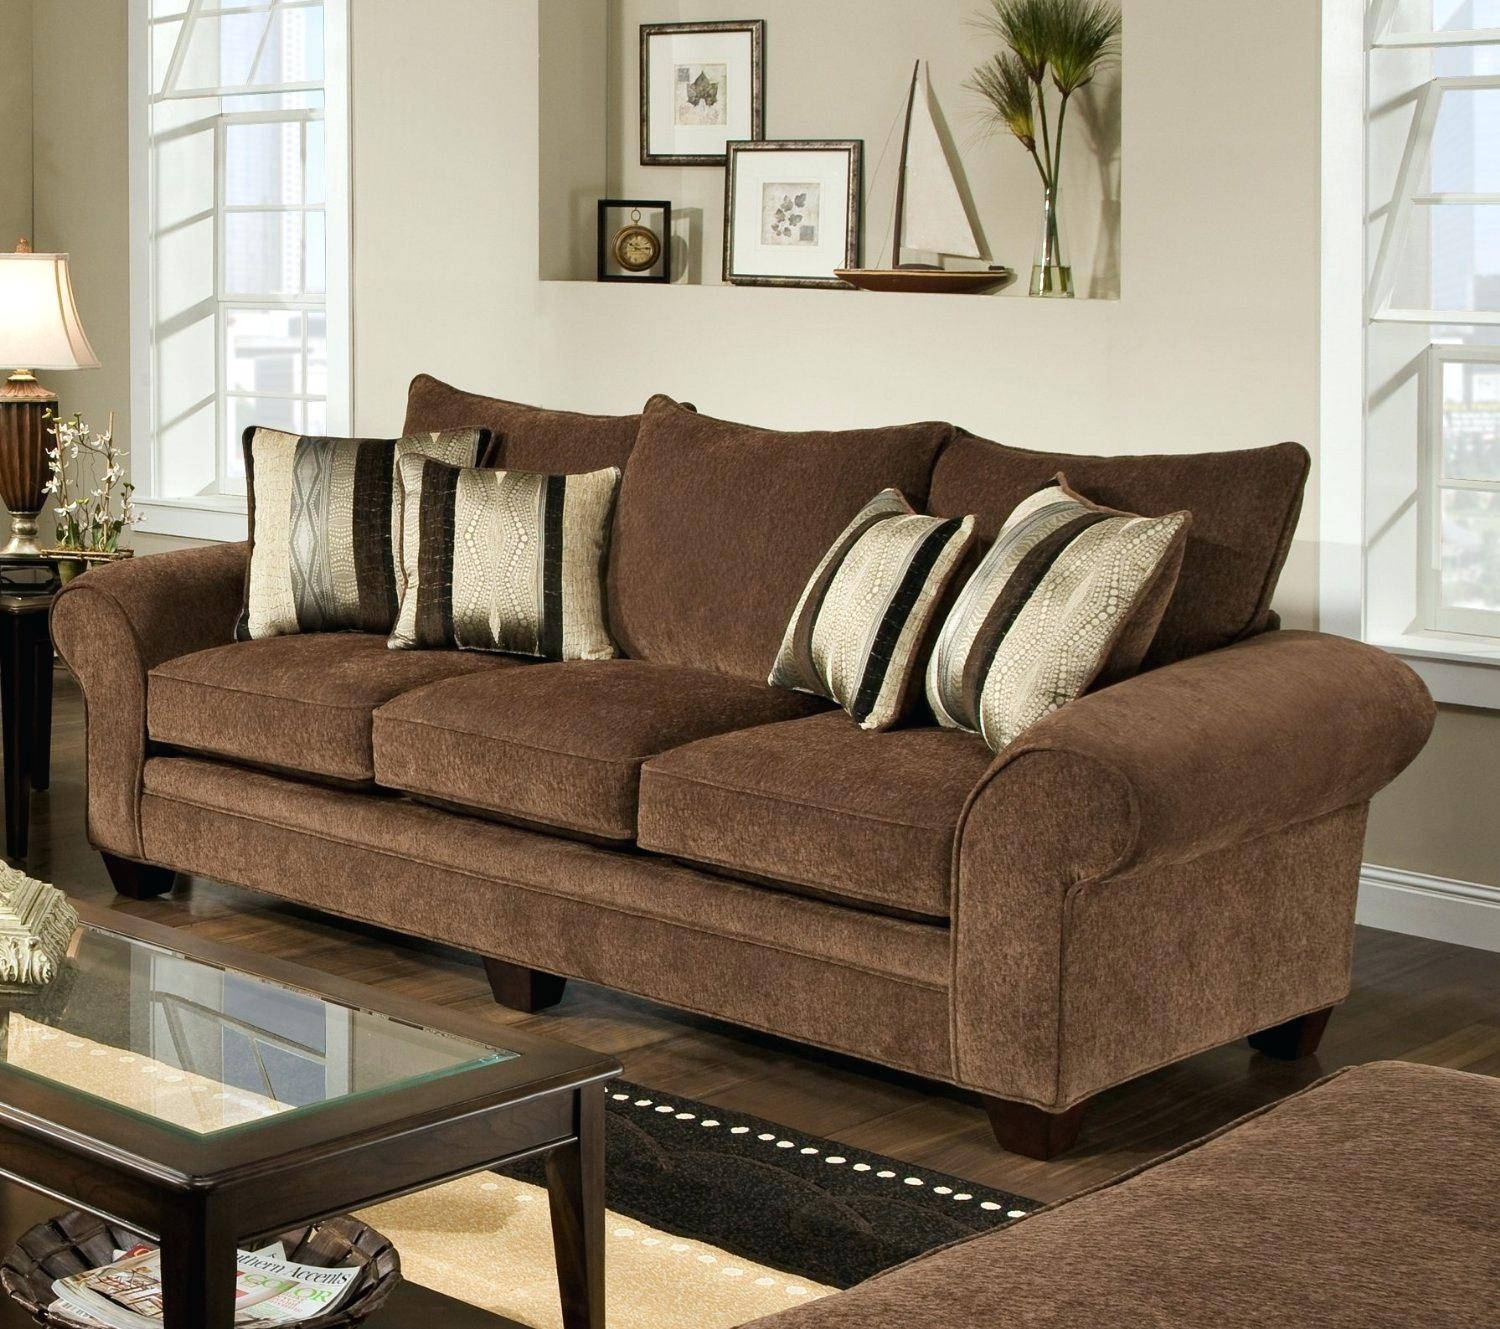 Berkline Sofa Reviews Curiosity Power Reclining Sleeper 726445 regarding Berkline Sofas (Image 8 of 15)